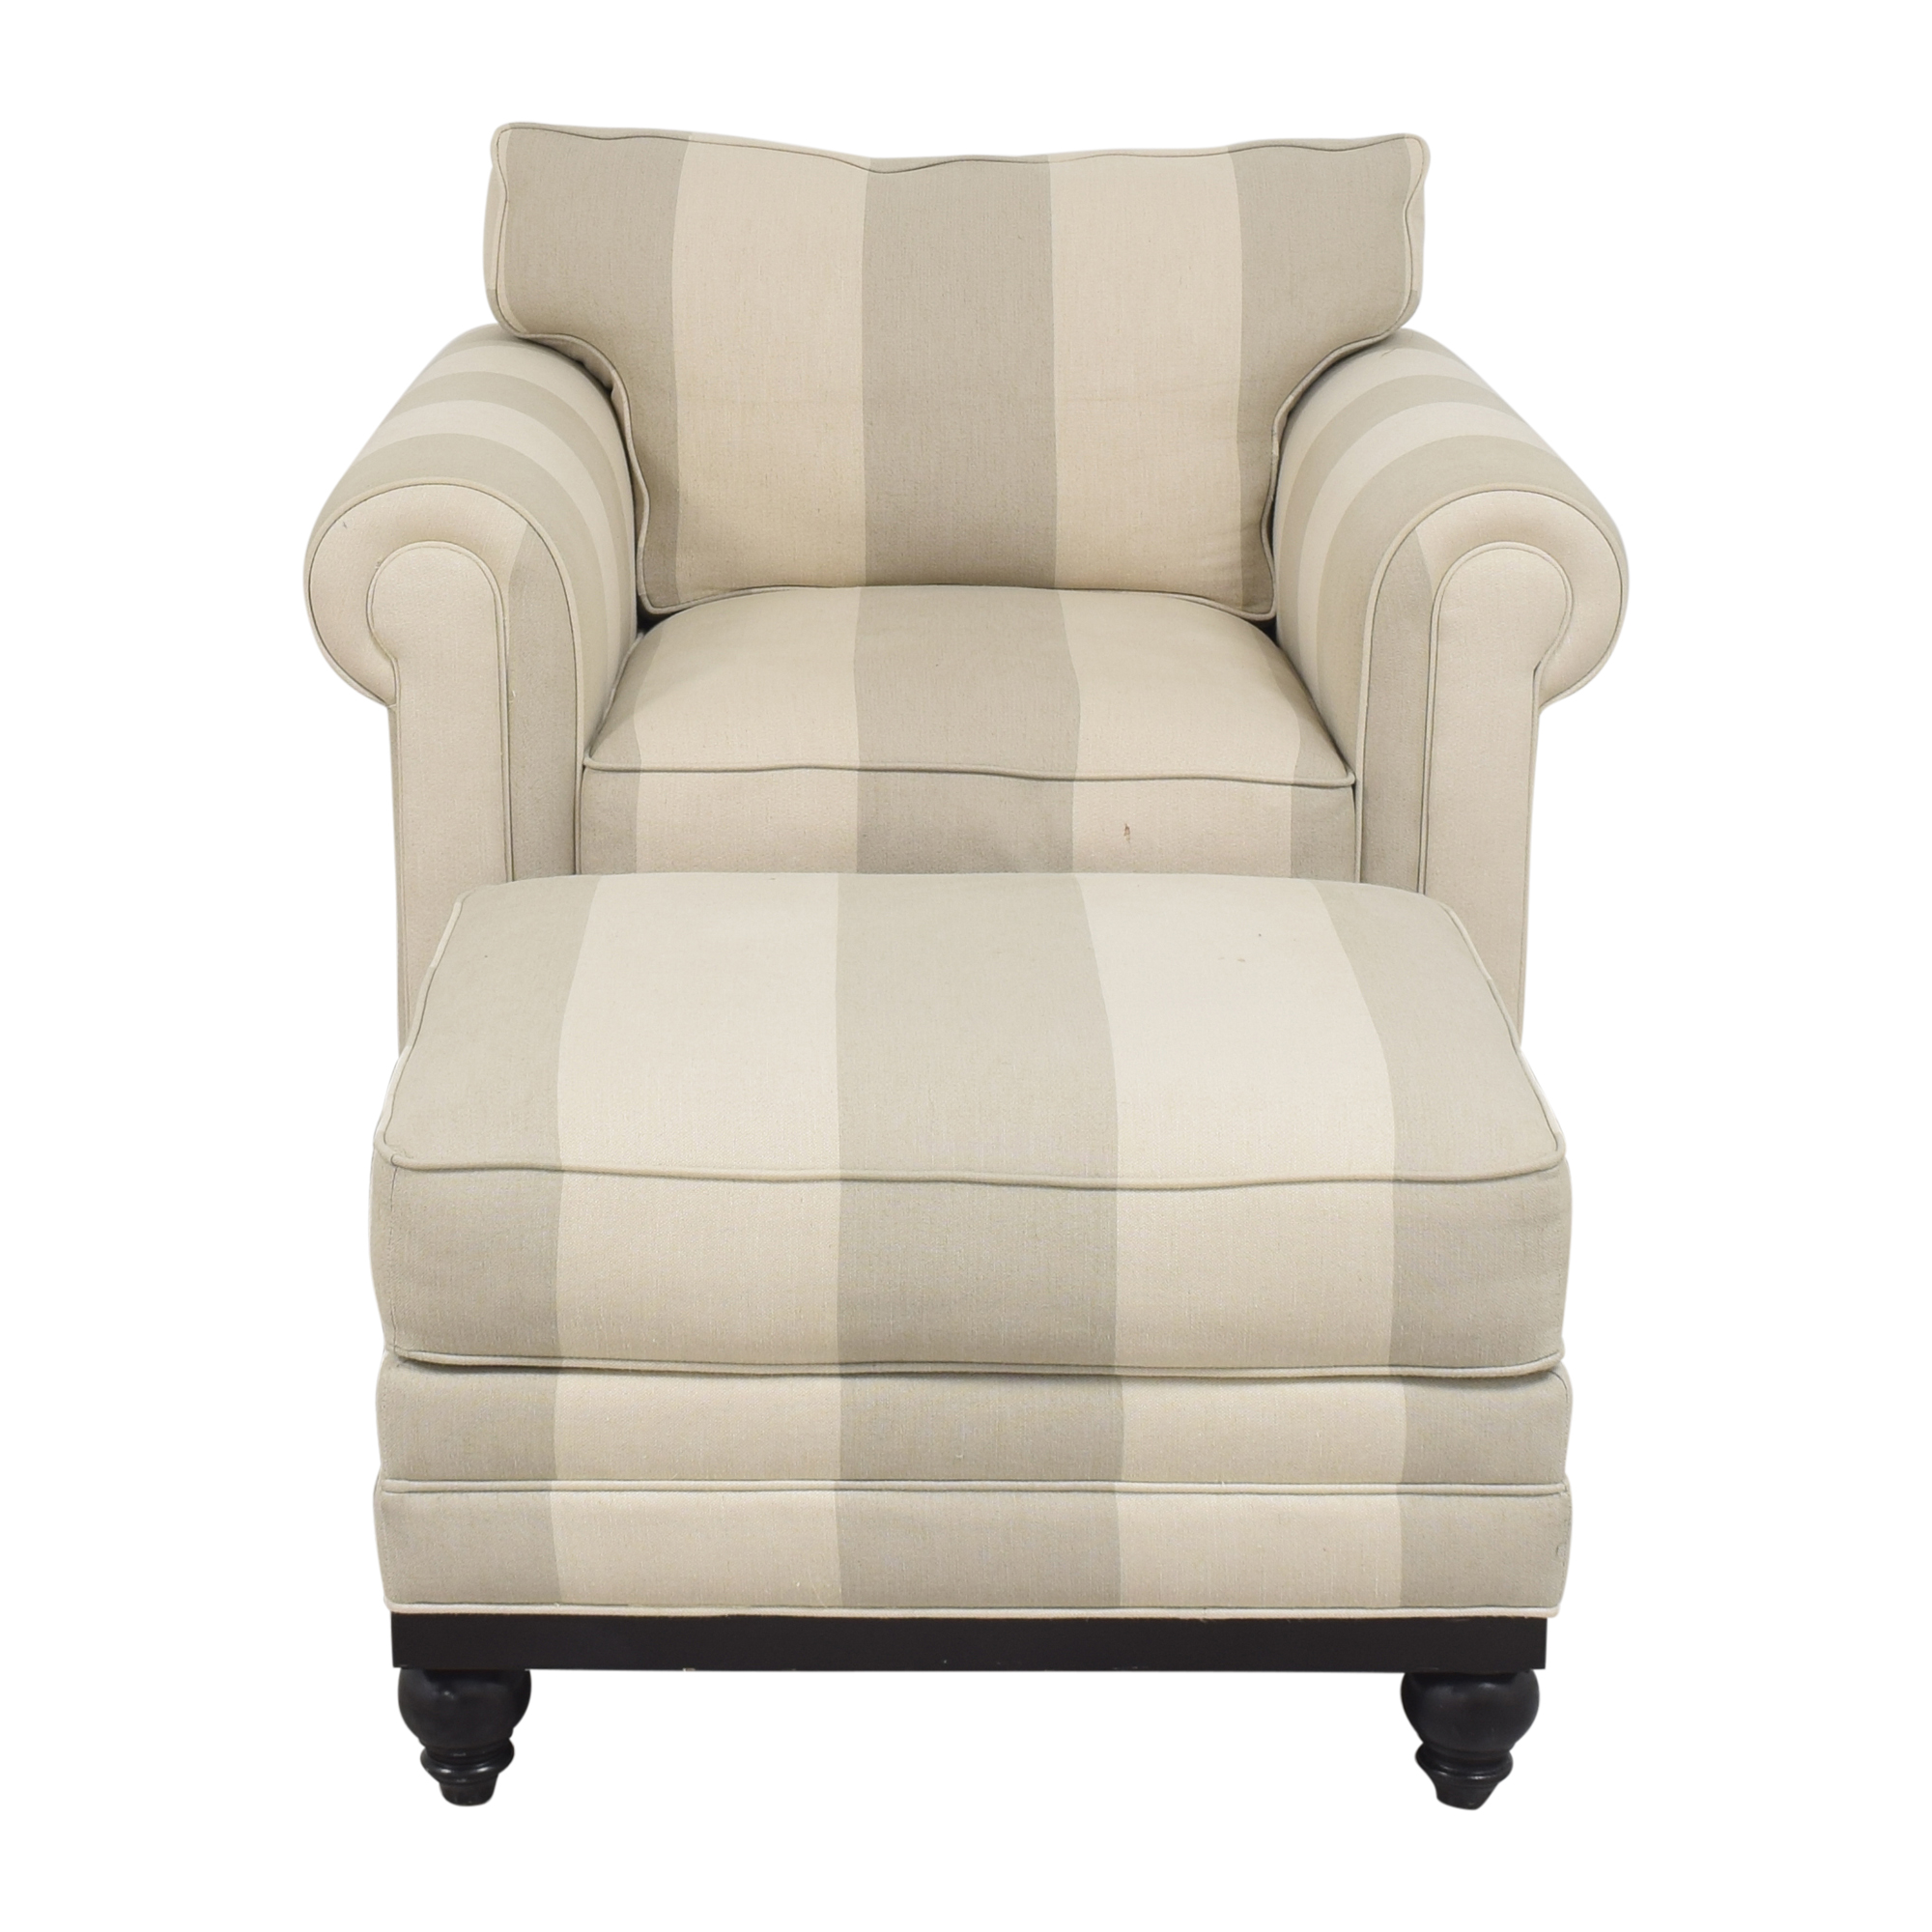 Macy's Macy's Martha Stewart Collection Stripe Club Chair and Ottoman used